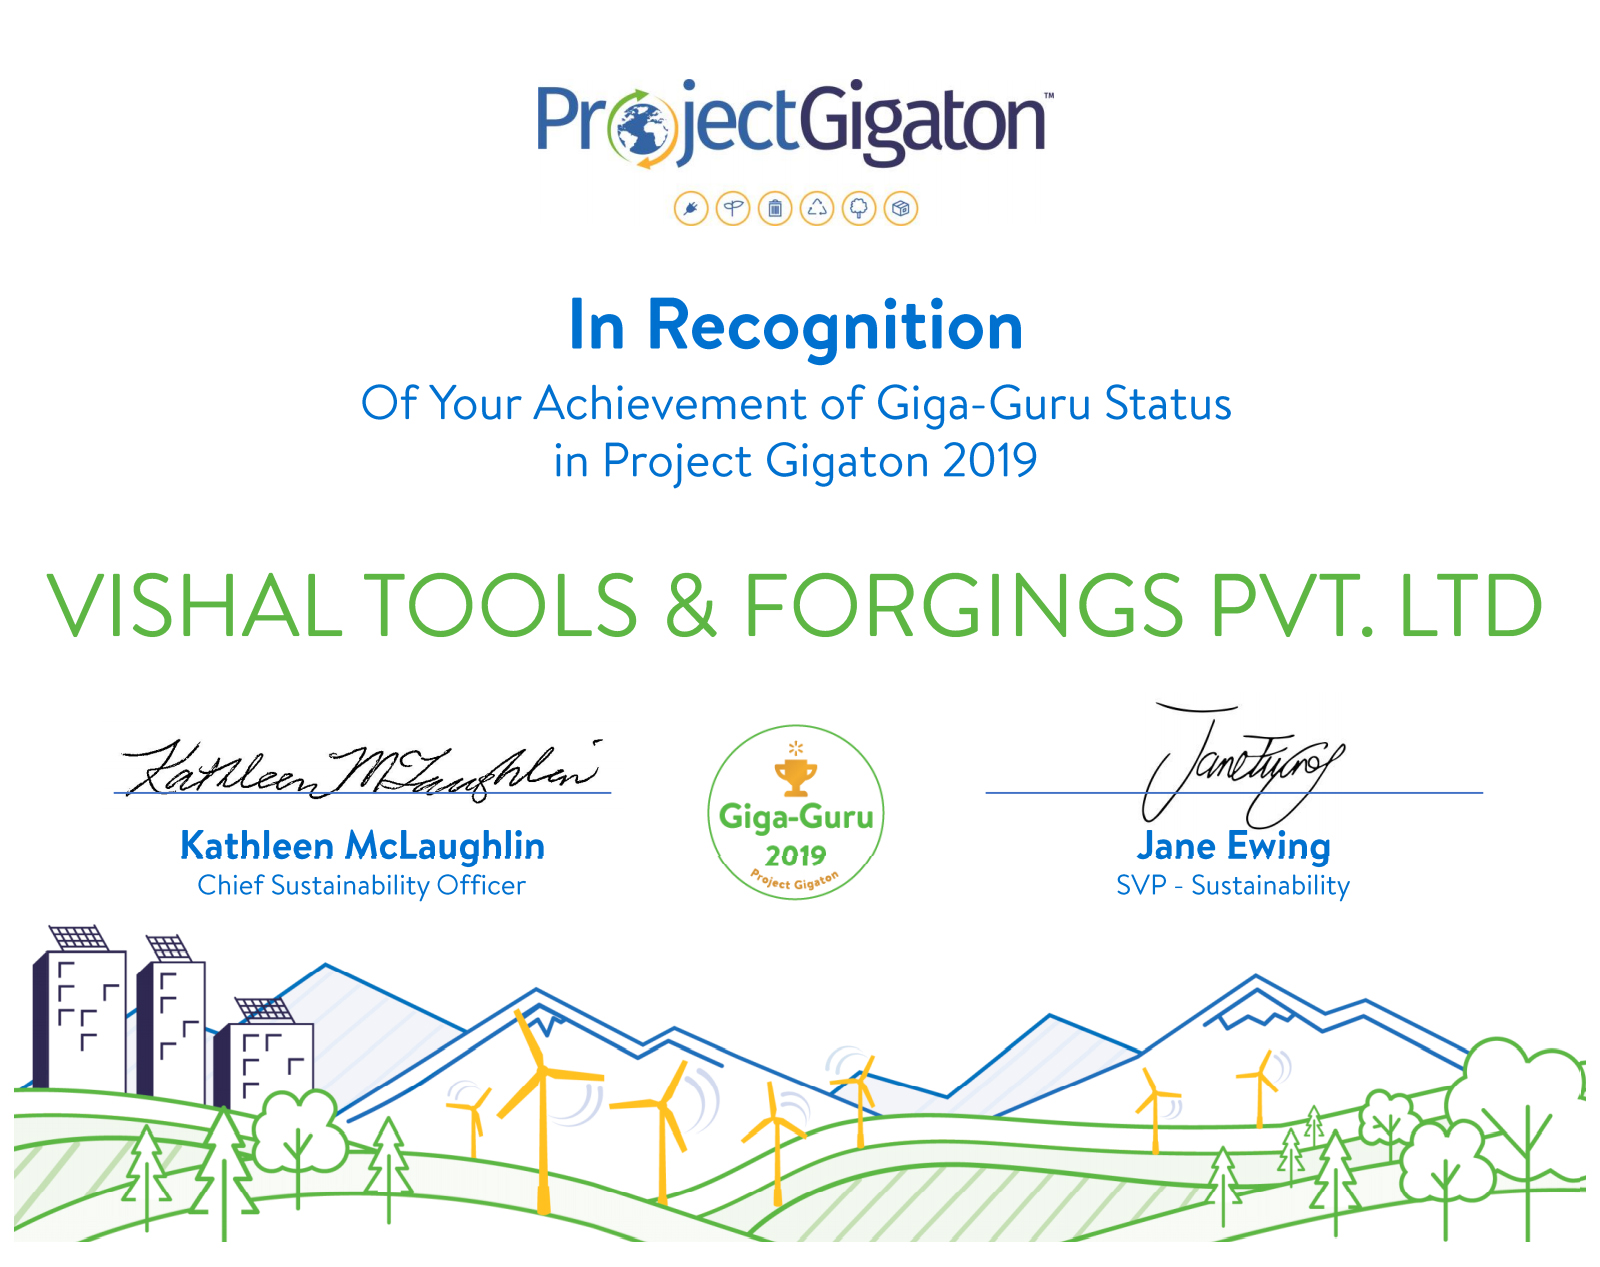 Vishal Tools & Forgings Pvt Ltd's 2020 Sustainability certificate